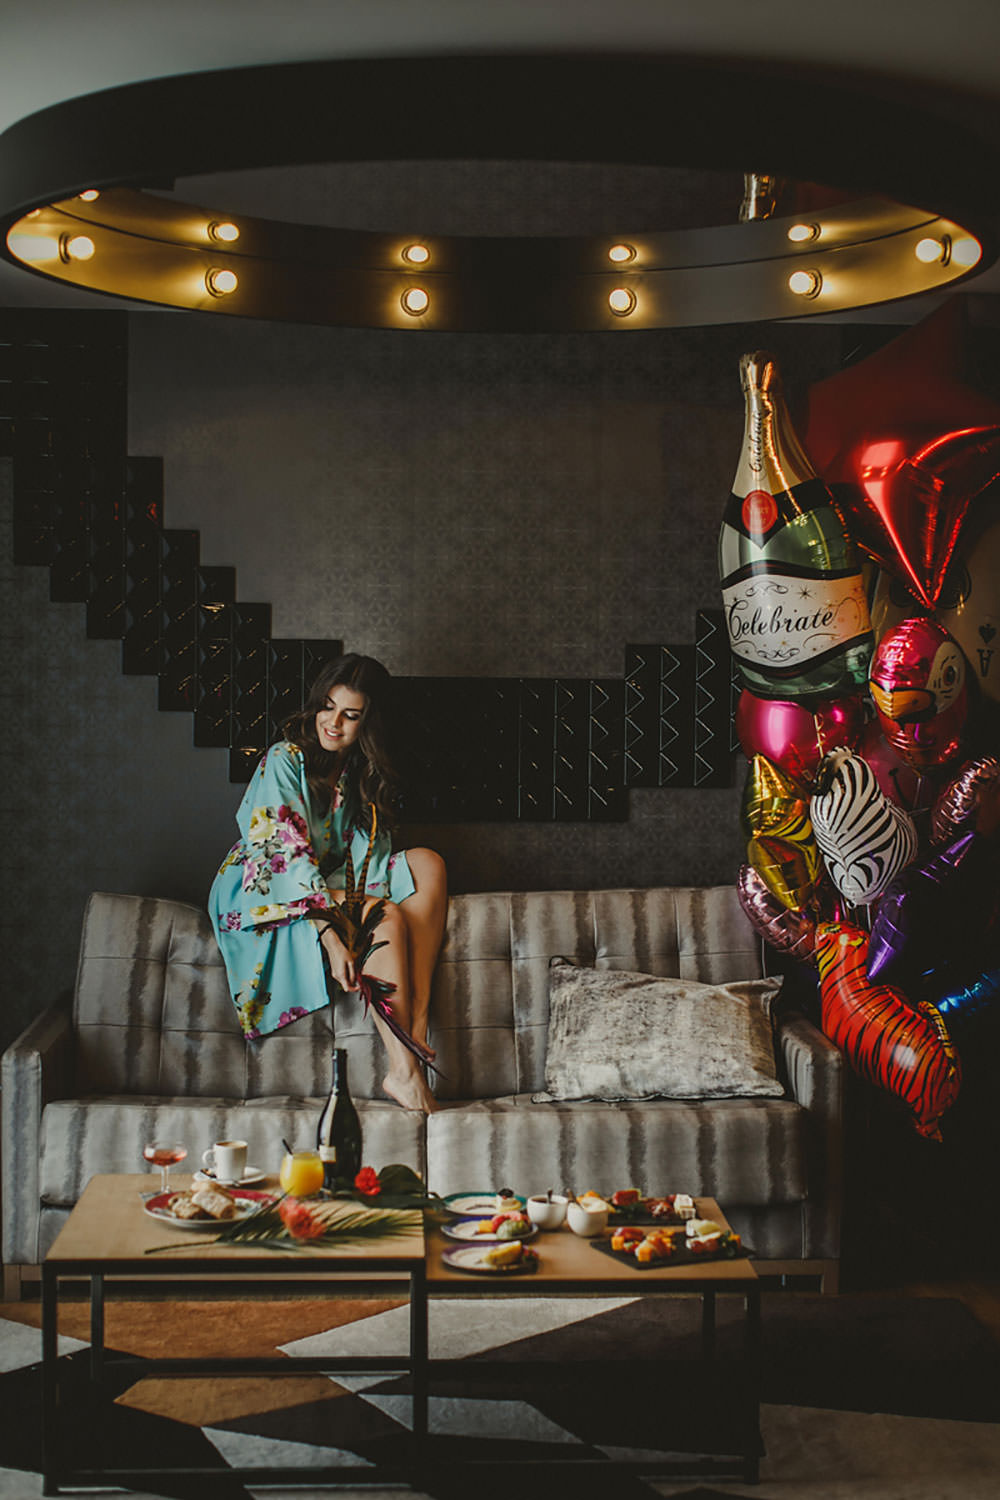 Destination Elopement Colorful Morning Robe Preparation Bride Balloons | Tropical Industrial Canary Islands Wedding Ideas Moana Photography